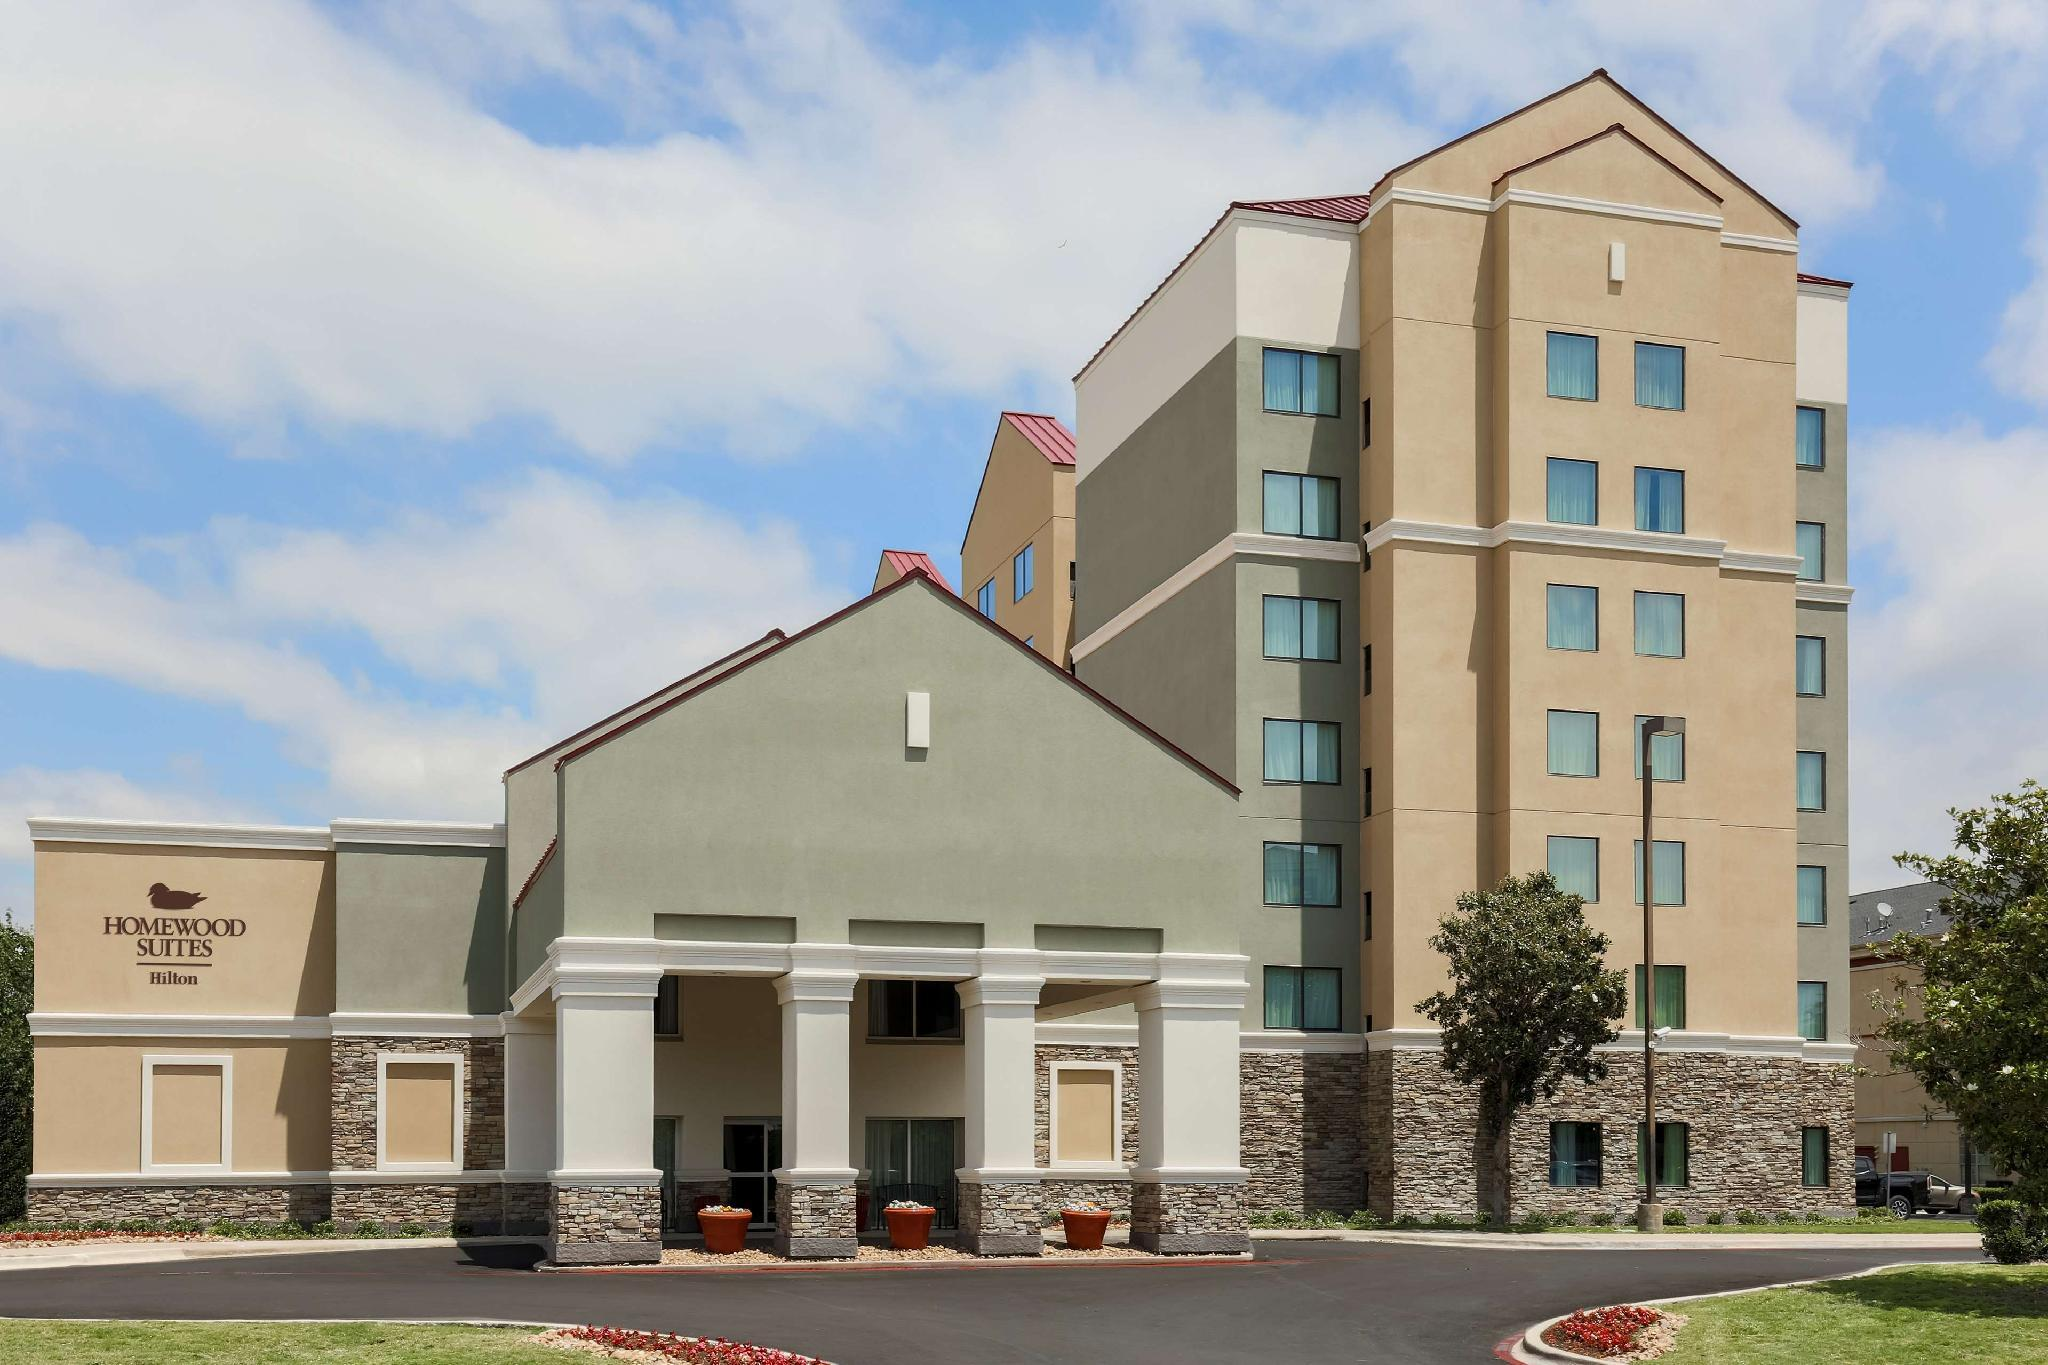 Homewood Suites By Hilton Ft. Worth Fossil Creek